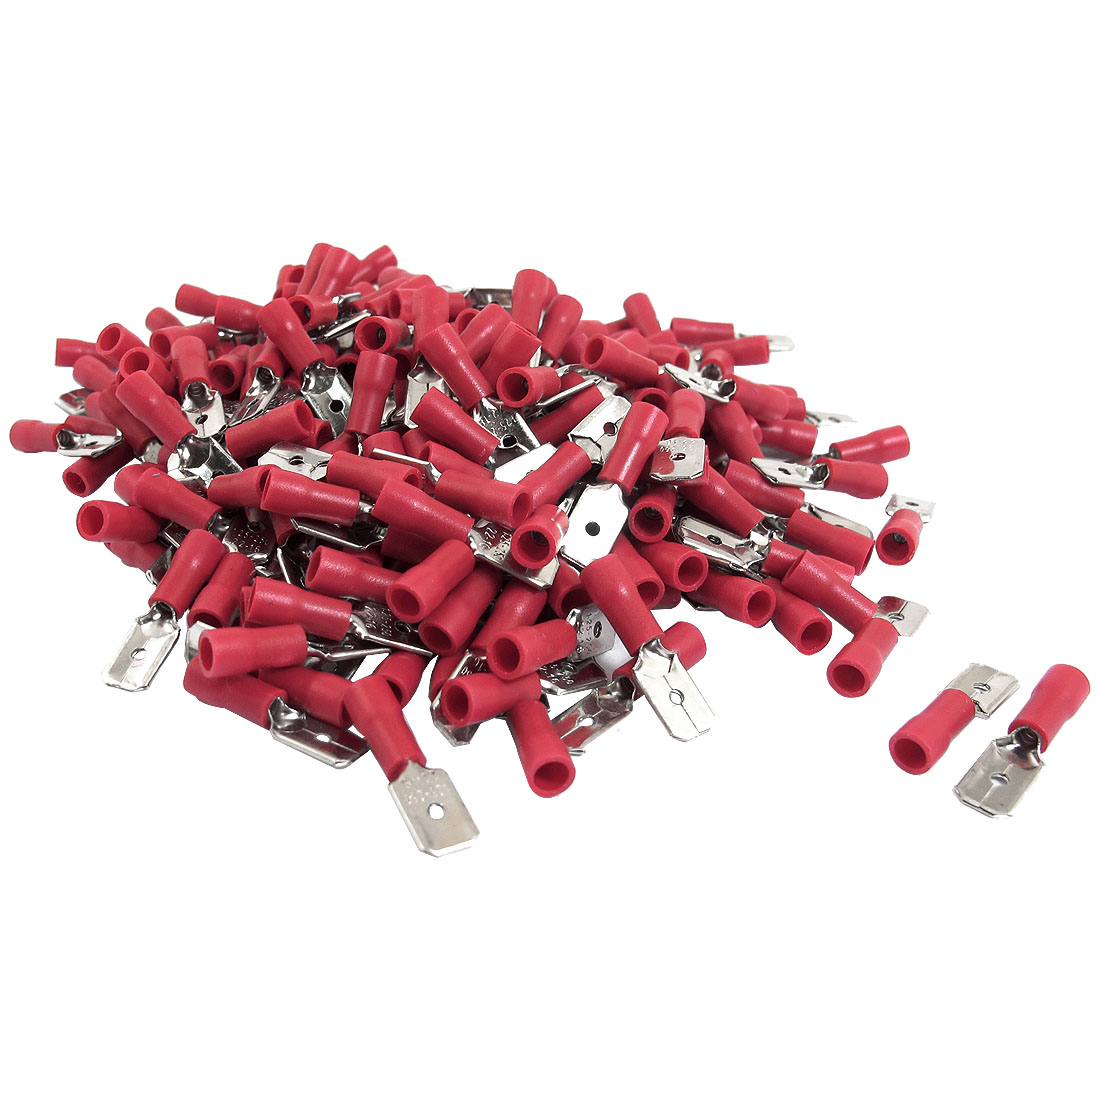 240 Pcs MDD1.25-250 Cable Wire Flat Flake Insulated Terminal Connectors Red